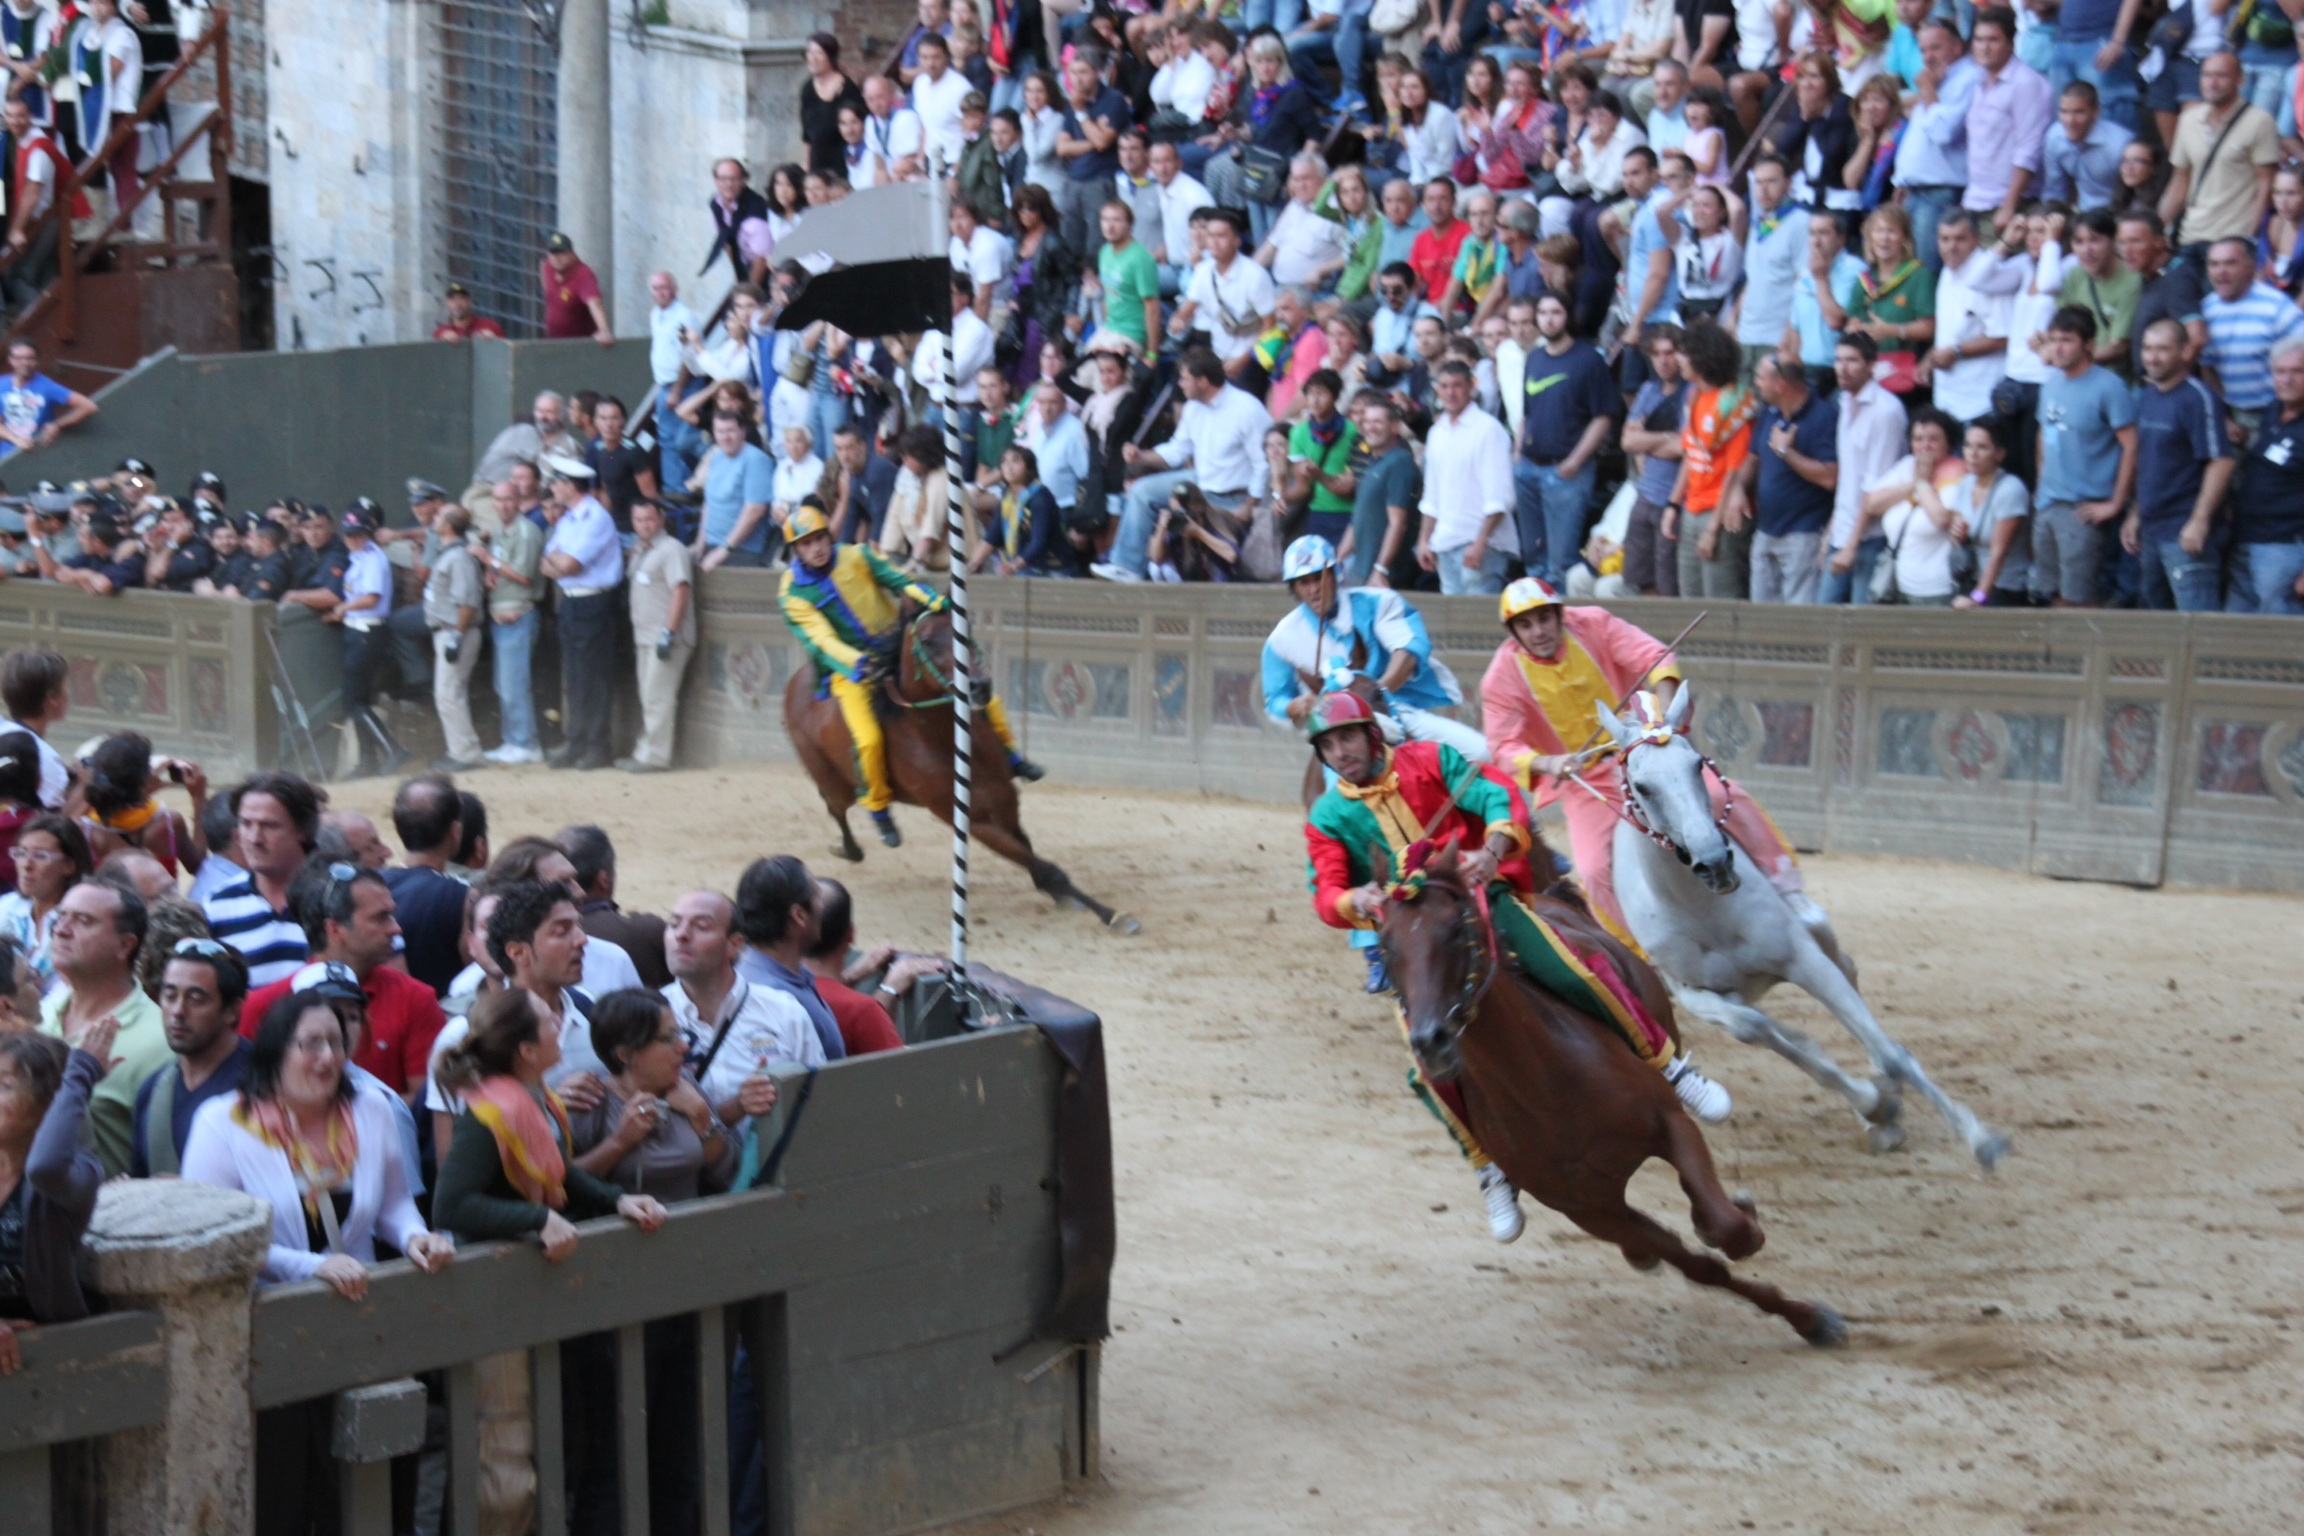 Photo of race horses racing in the Palio of Siena in the Piazza del Campo